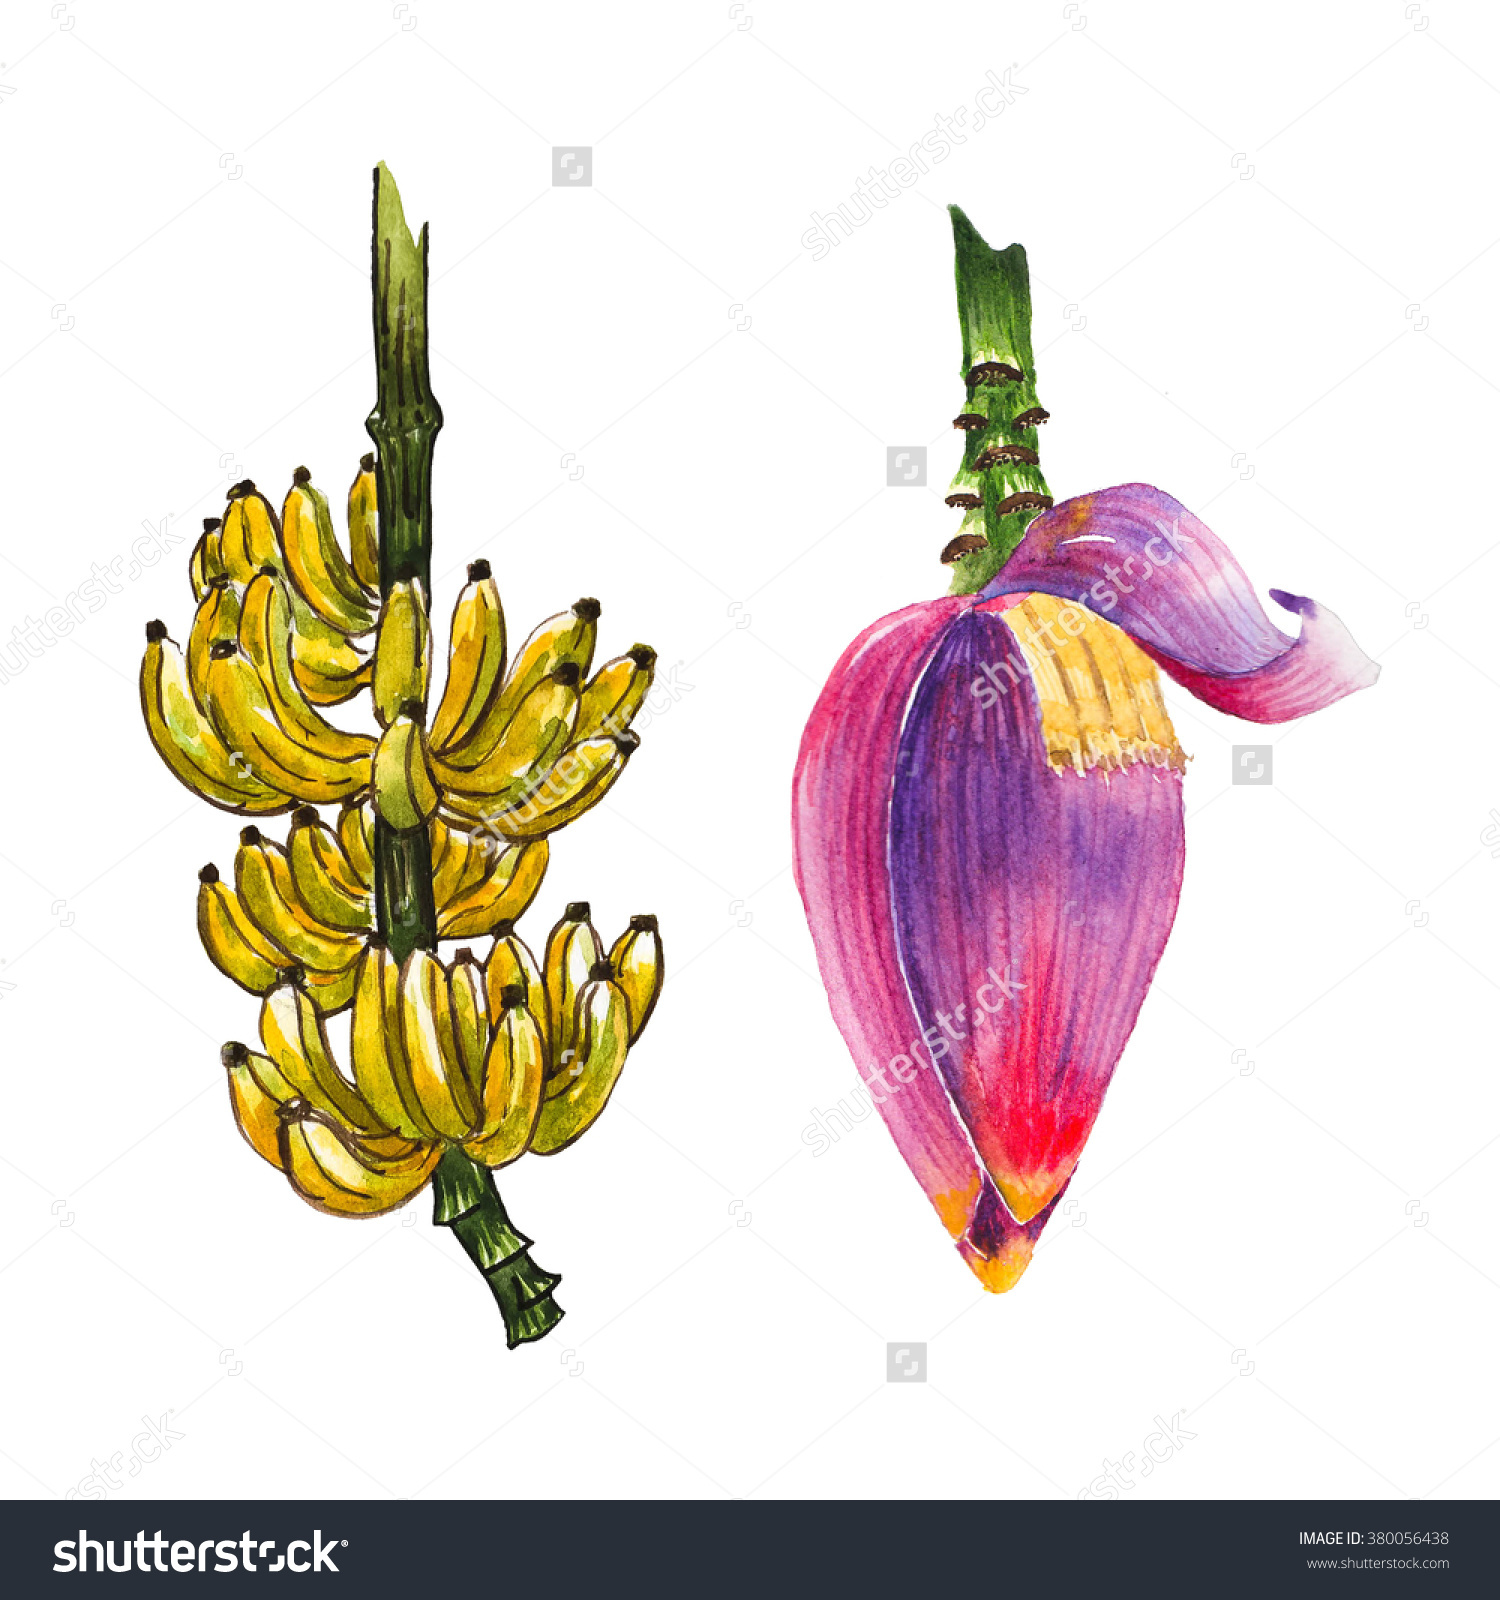 Yellow Banana Fruit Purple Banana Blossom Stock Illustration.